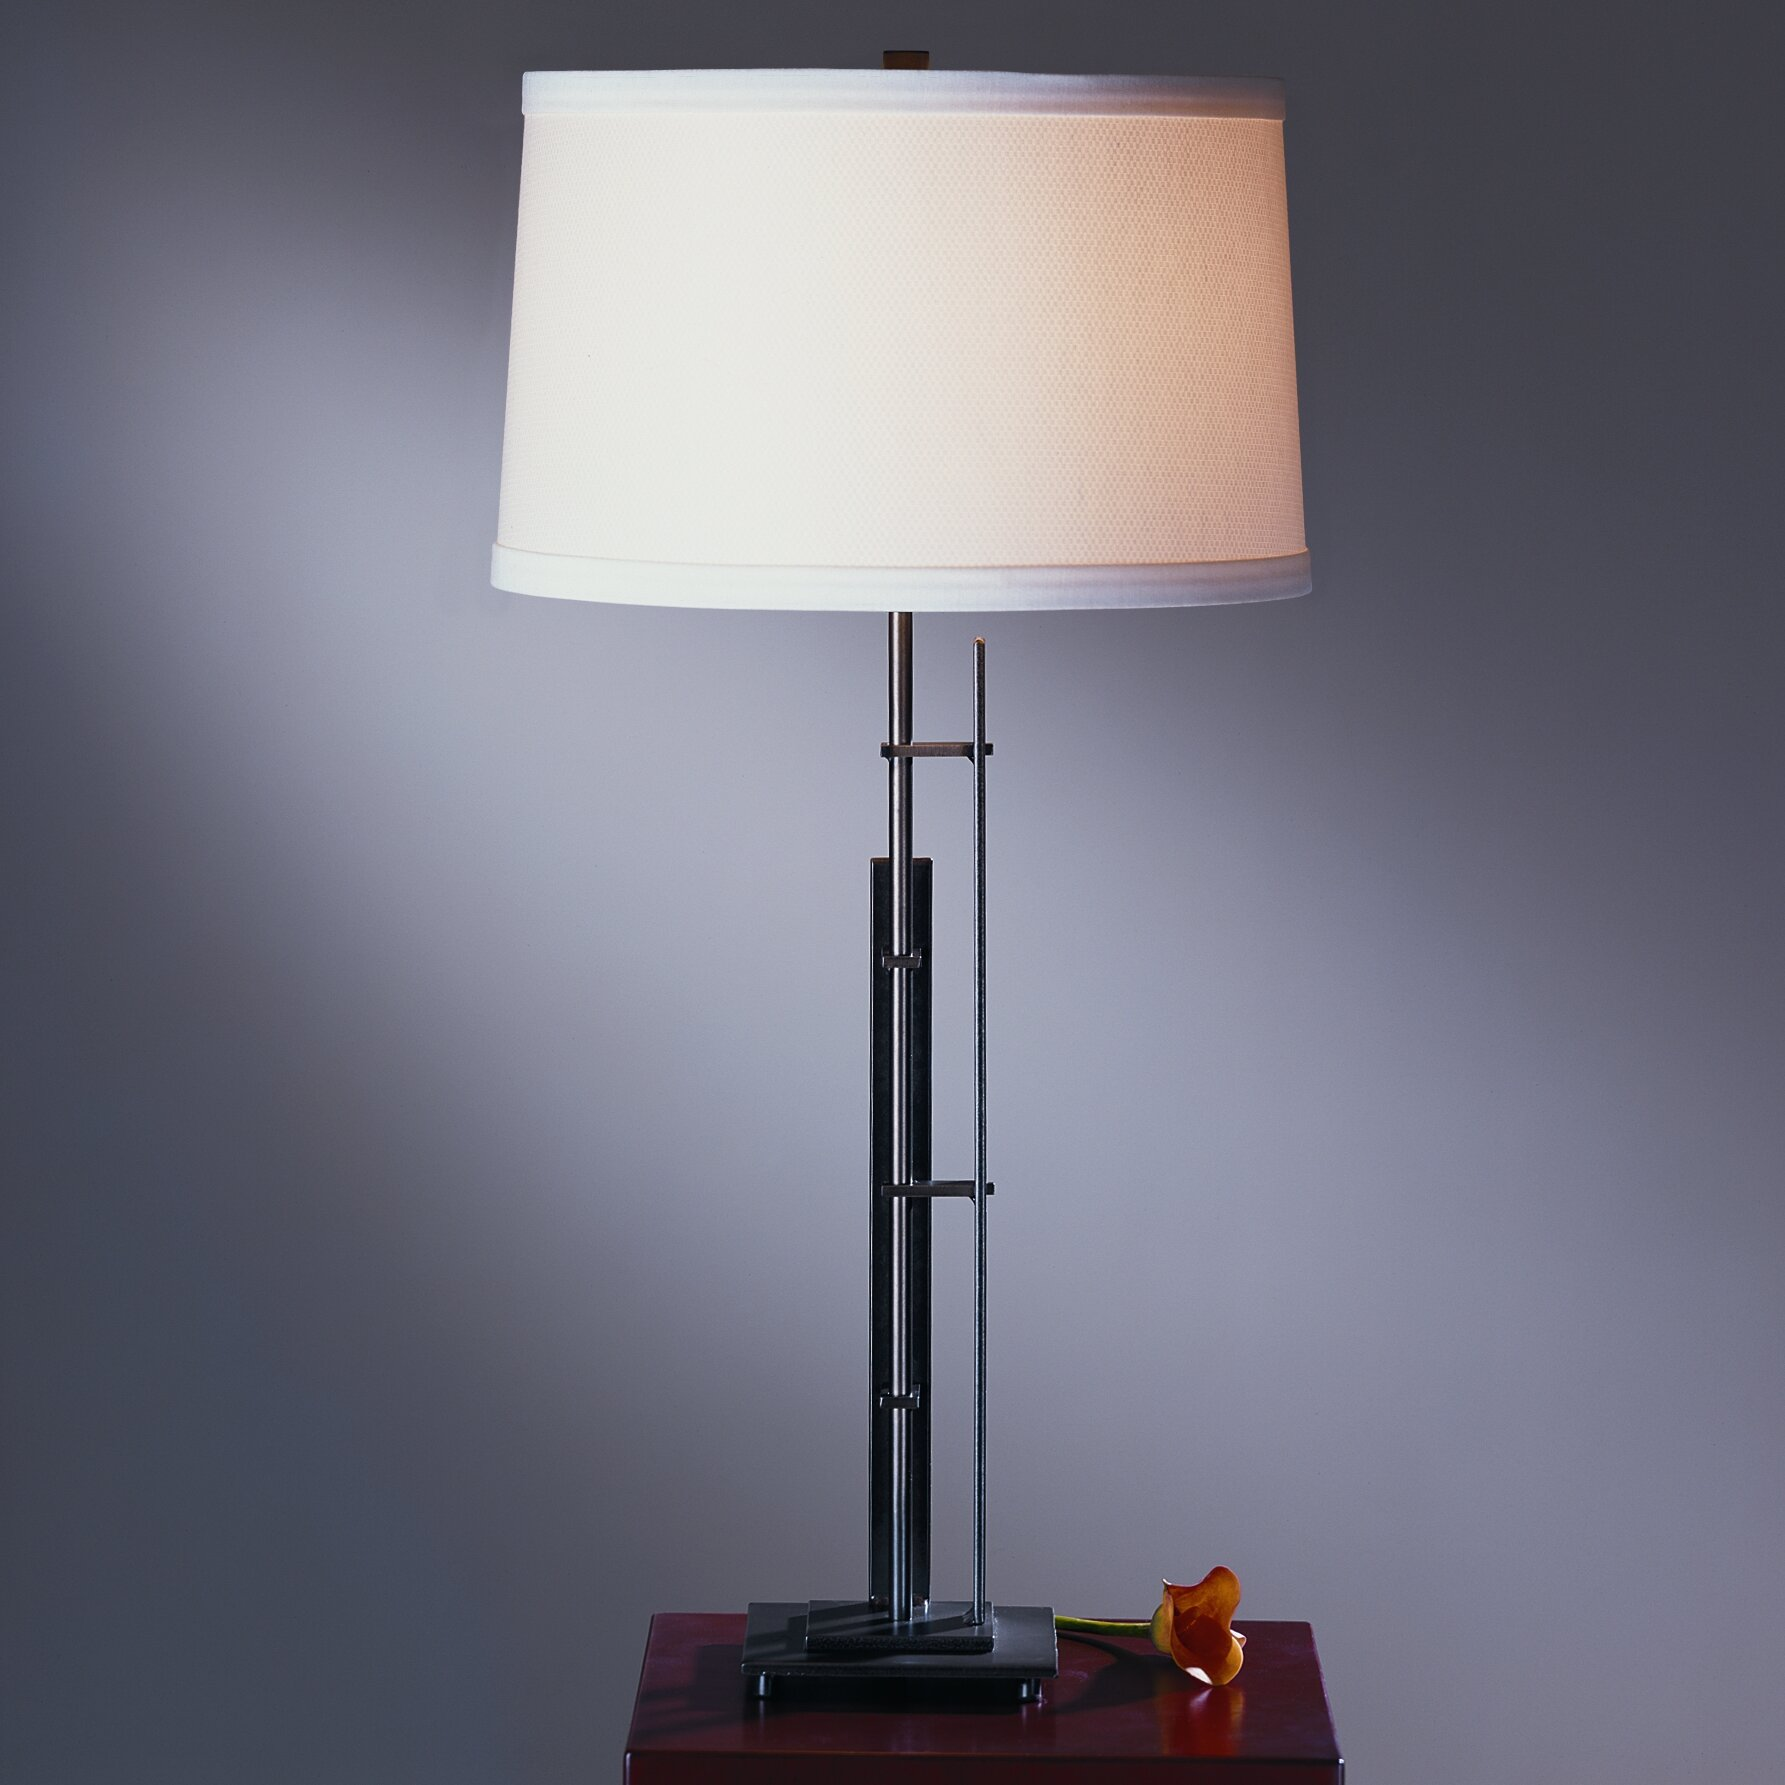 hubbardton forge metra 17 6 table lamp reviews wayfair. Black Bedroom Furniture Sets. Home Design Ideas